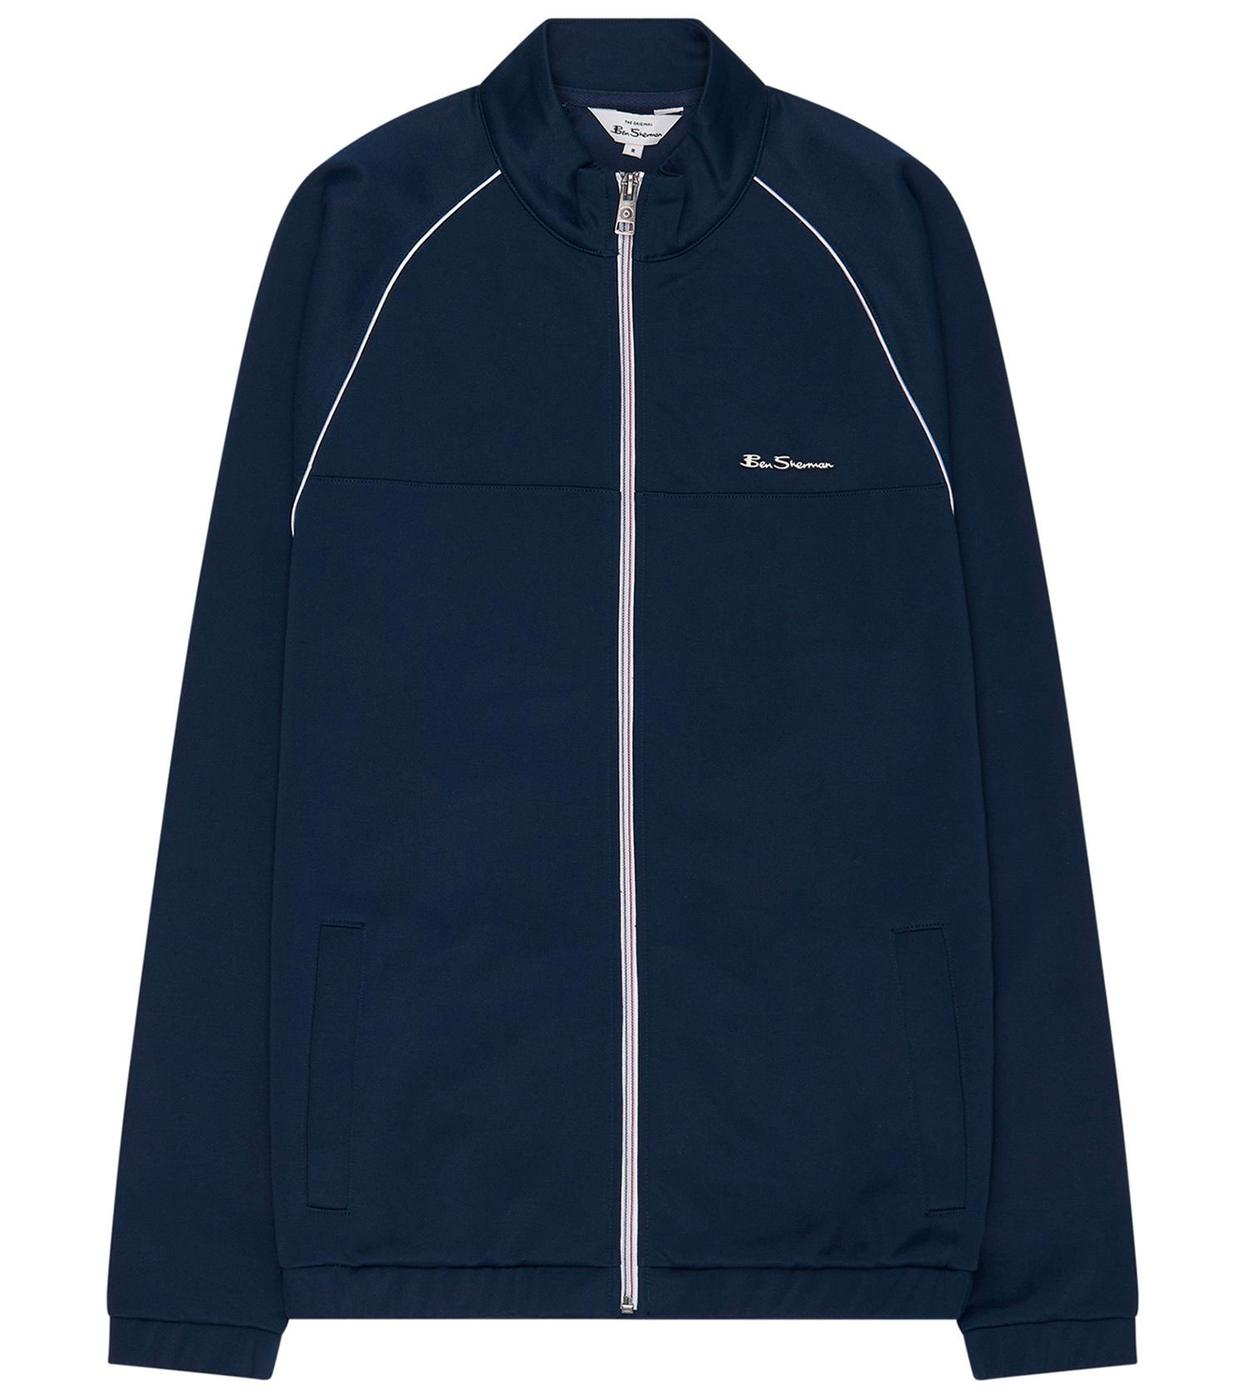 BEN SHERMAN Retro Mod 70s Tricot Track Top in Navy